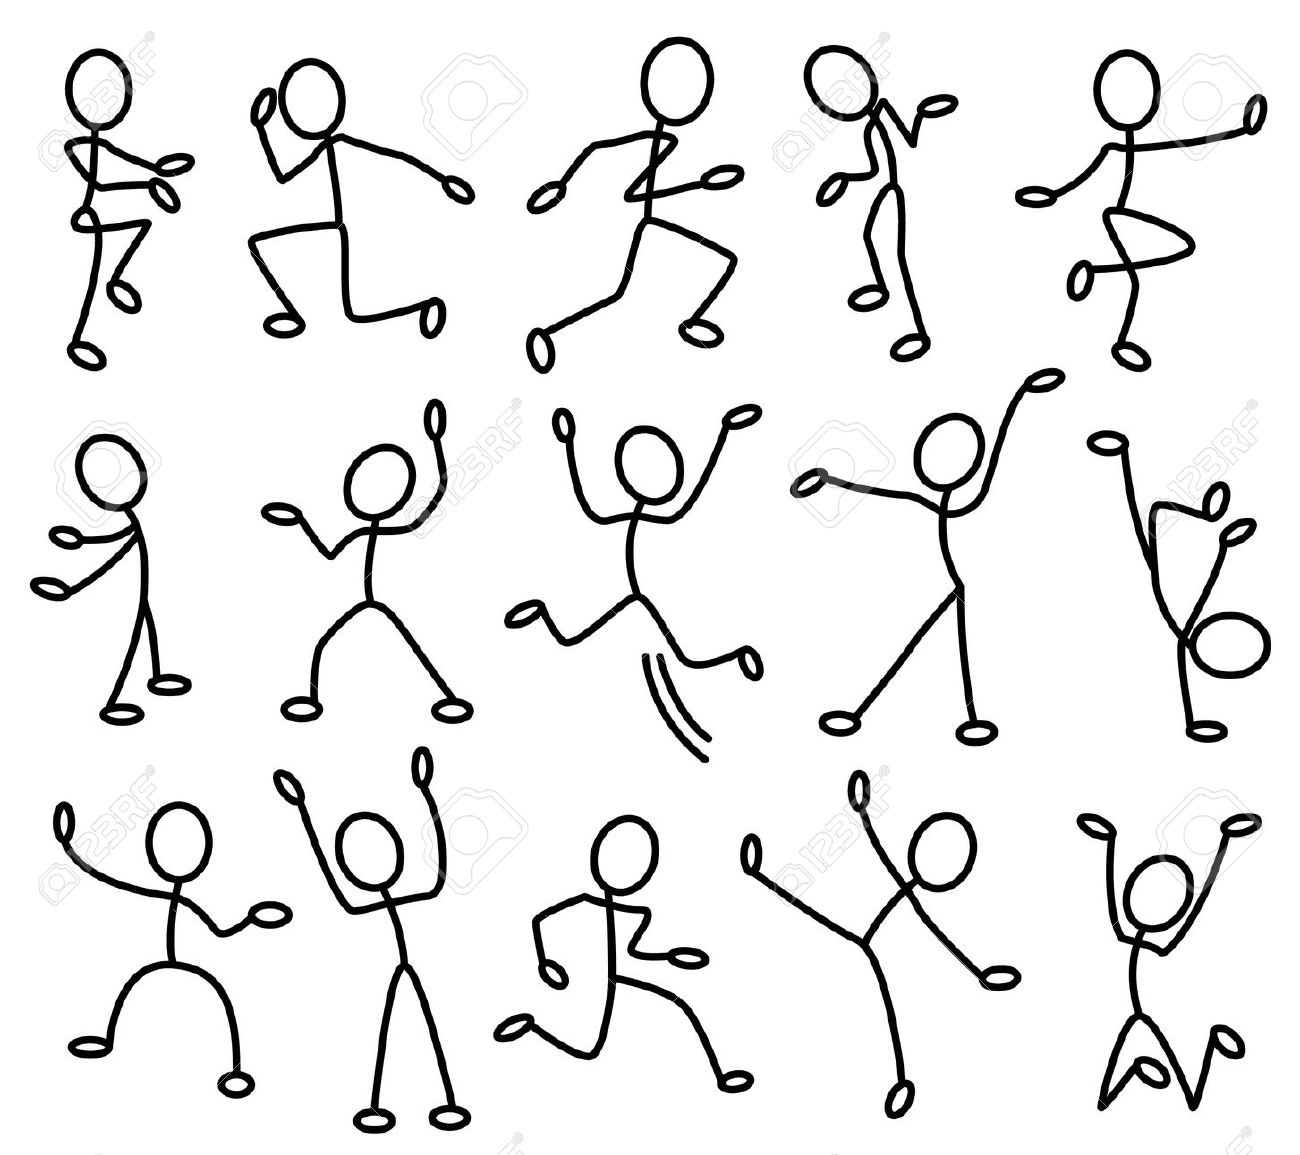 Movement Clipart.